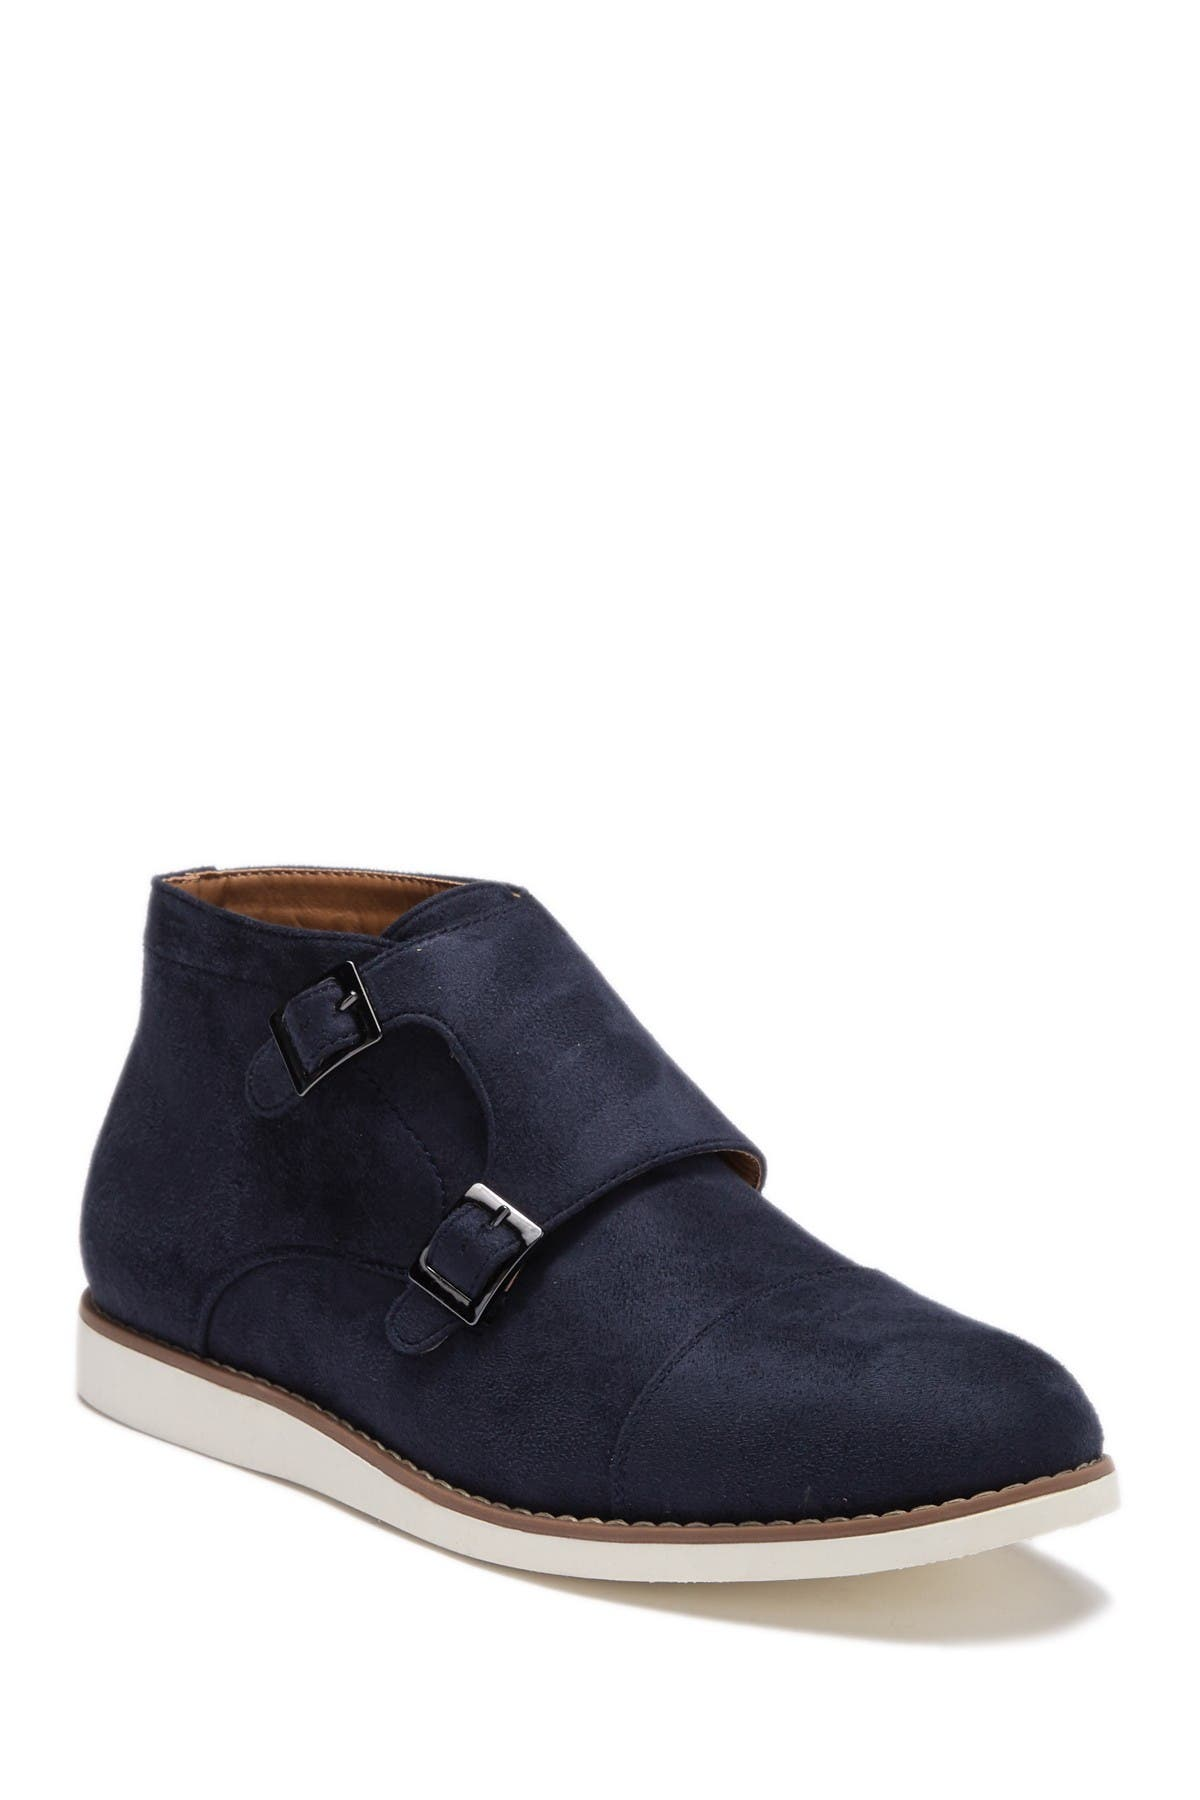 Image of Reserved Footwear Monk Strap Cap Toe Casual Boot